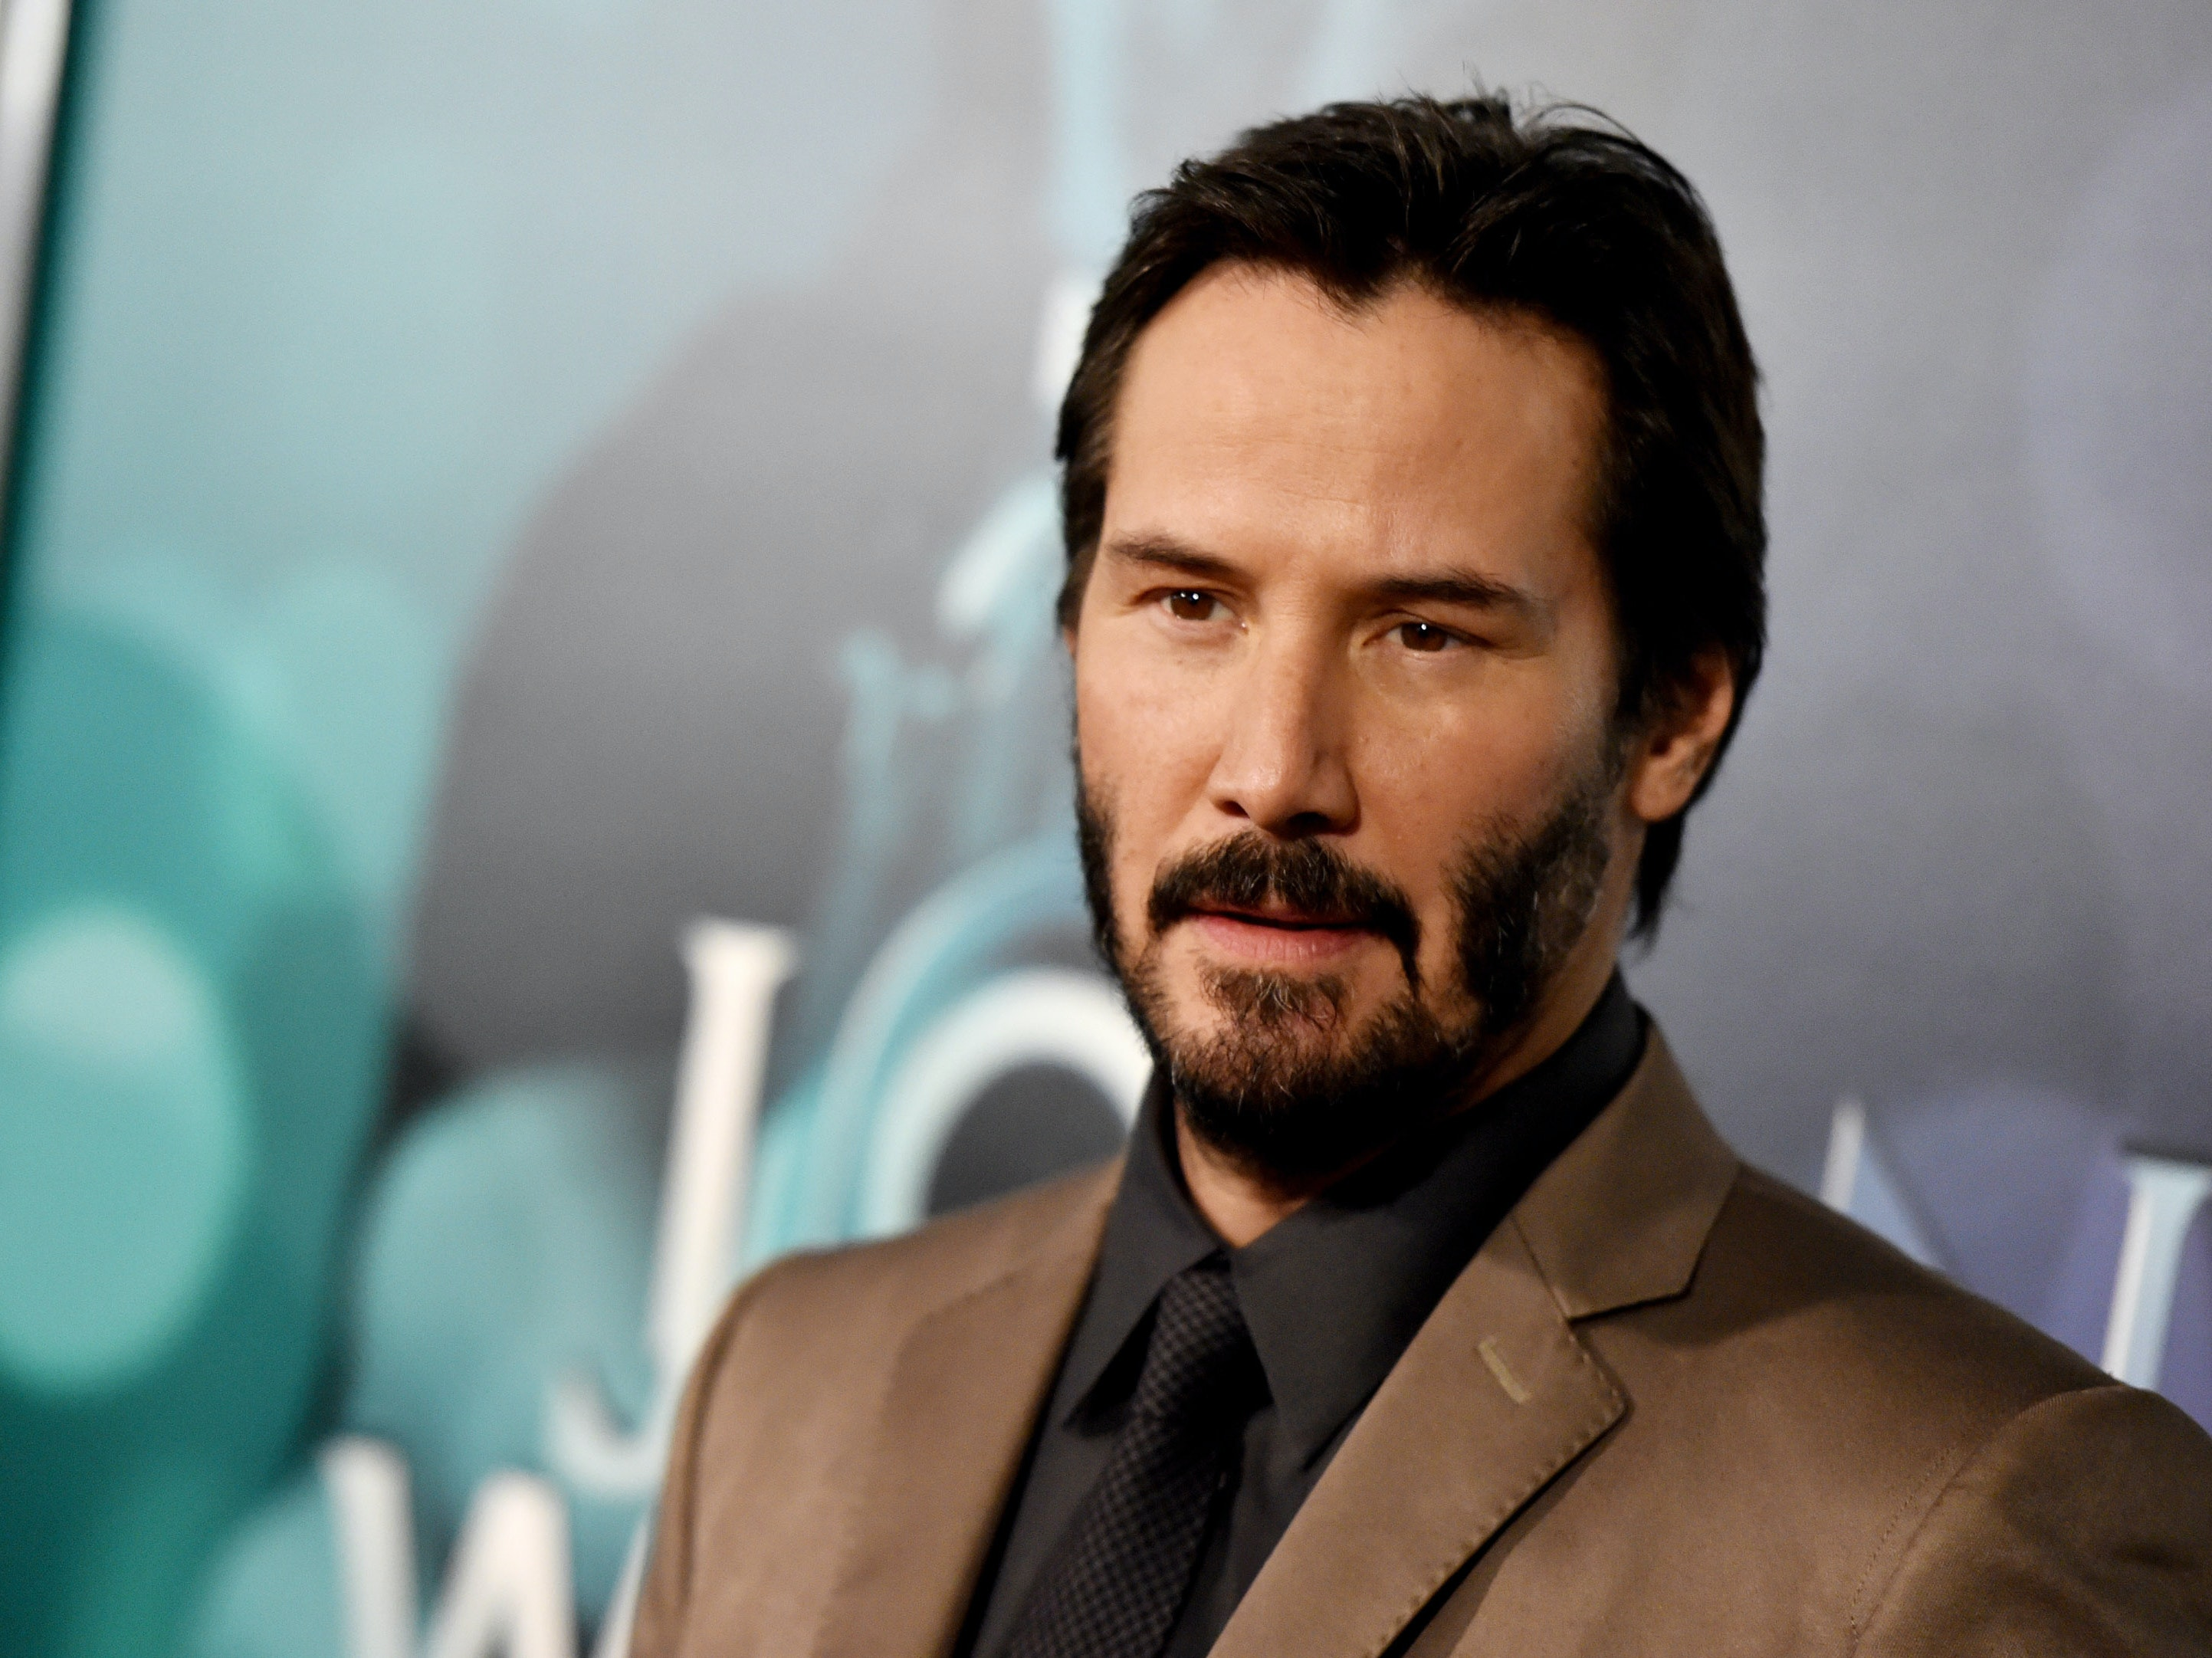 Keanu Reeves Reunites With Laurence Fishburne in 'John Wick 2' Set Photos